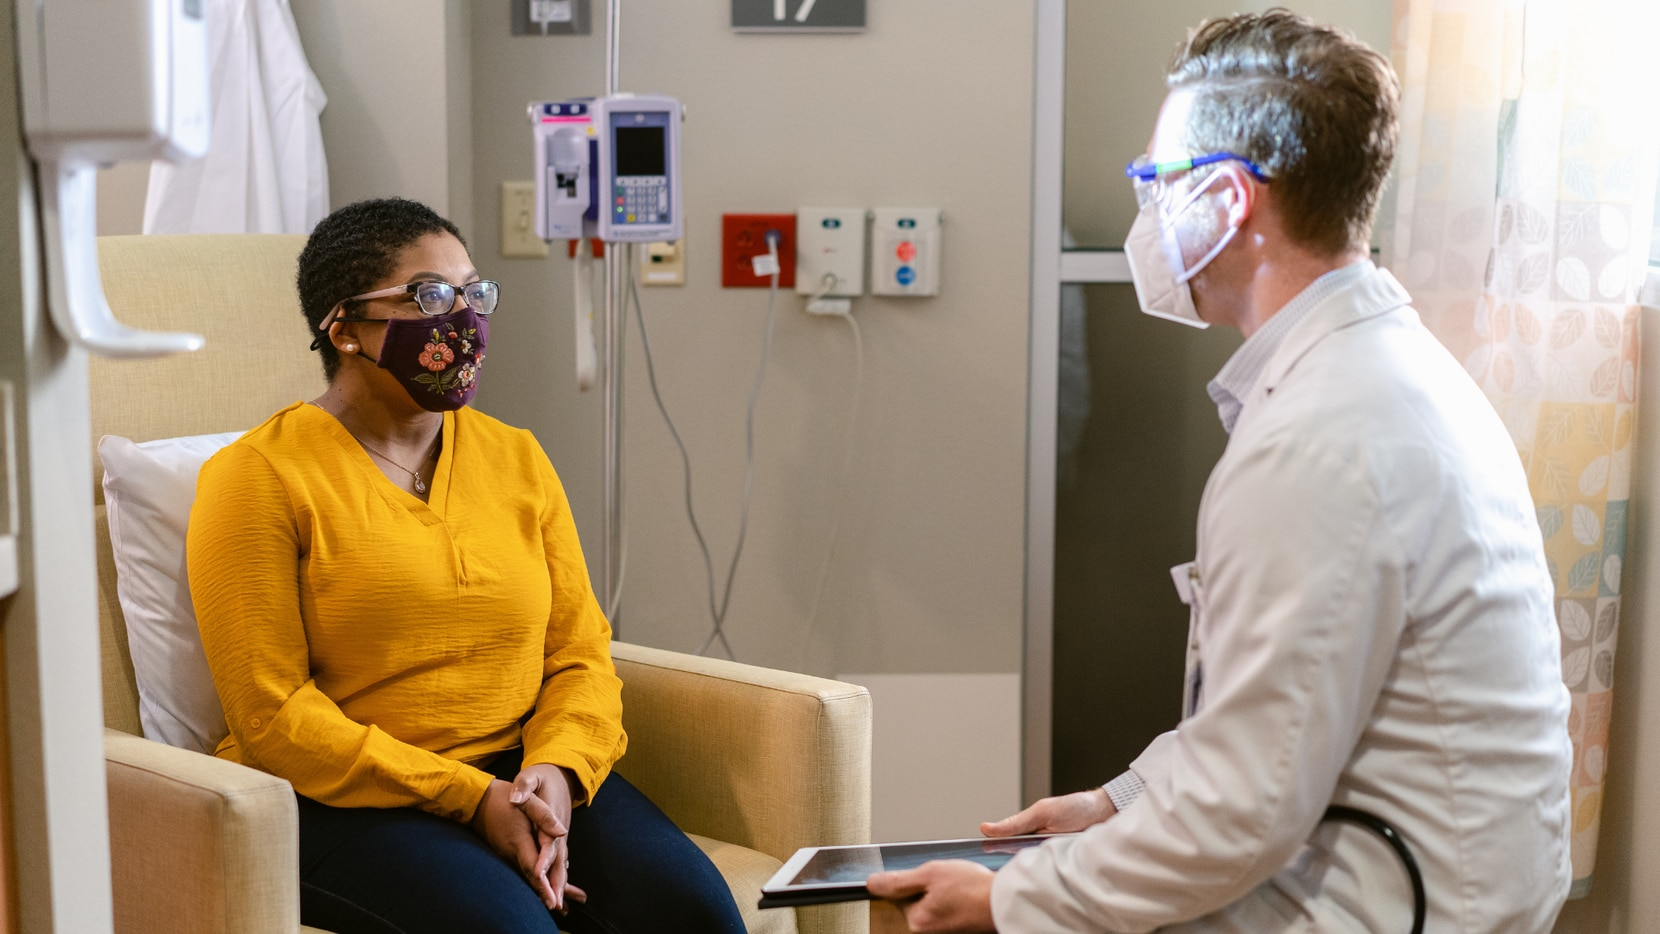 The care teams at Baylor Scott & White Health treat cancer patients like Amber Hernandez with personalized, compassionate care while continuing to advance cancer treatments.